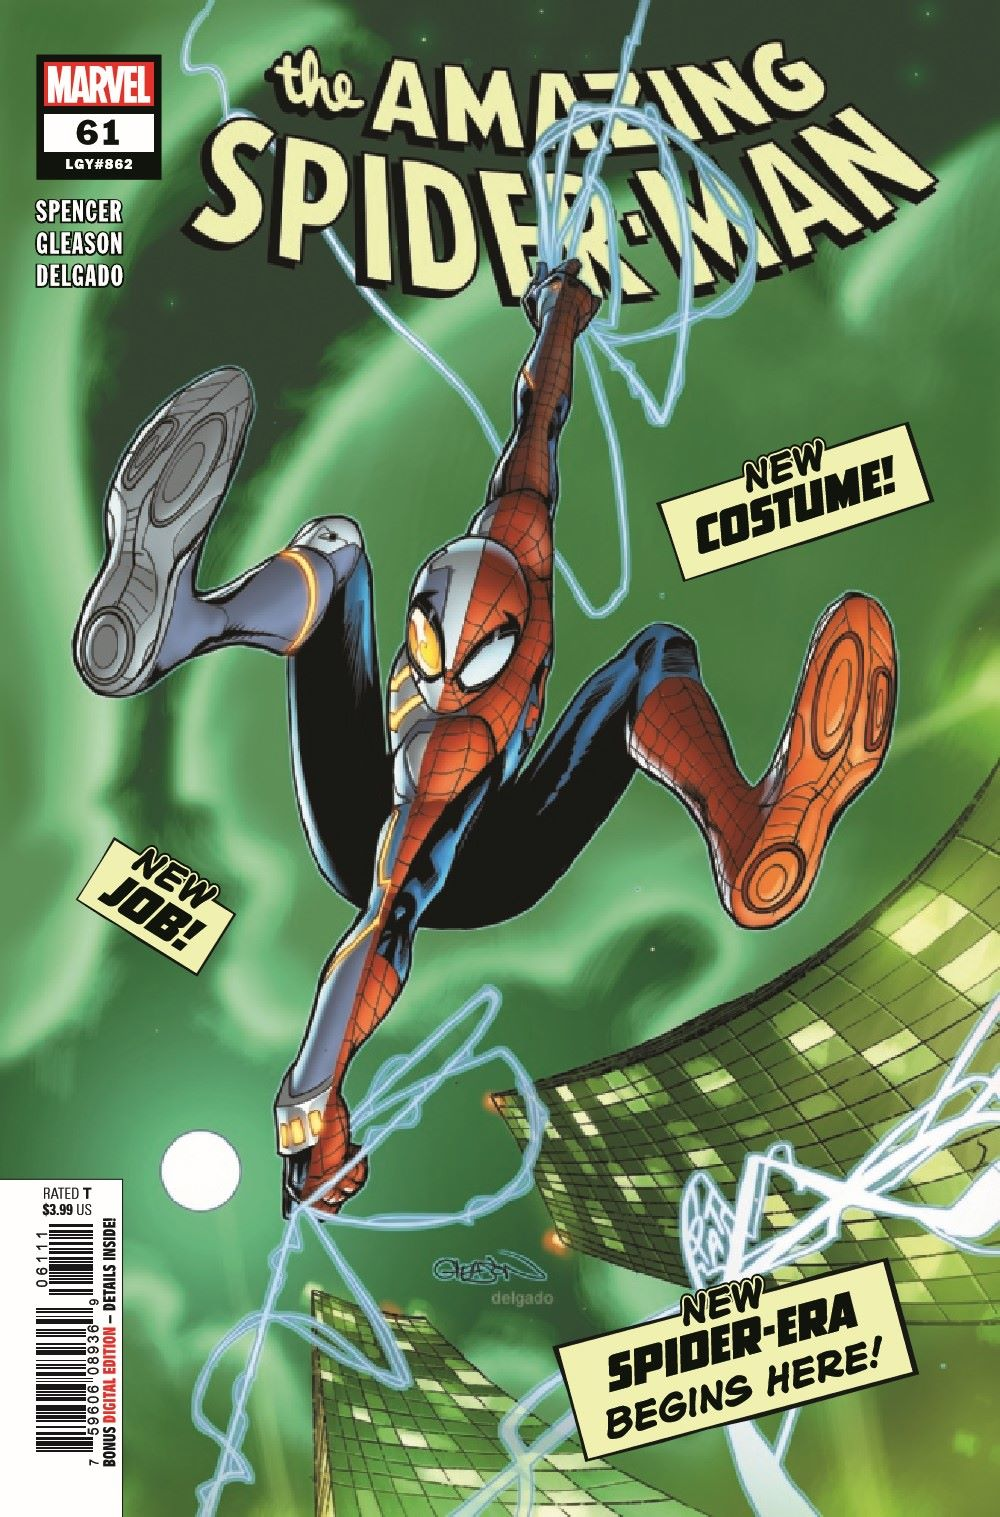 ASM2018061_Preview-1 ComicList Previews: THE AMAZING SPIDER-MAN #61